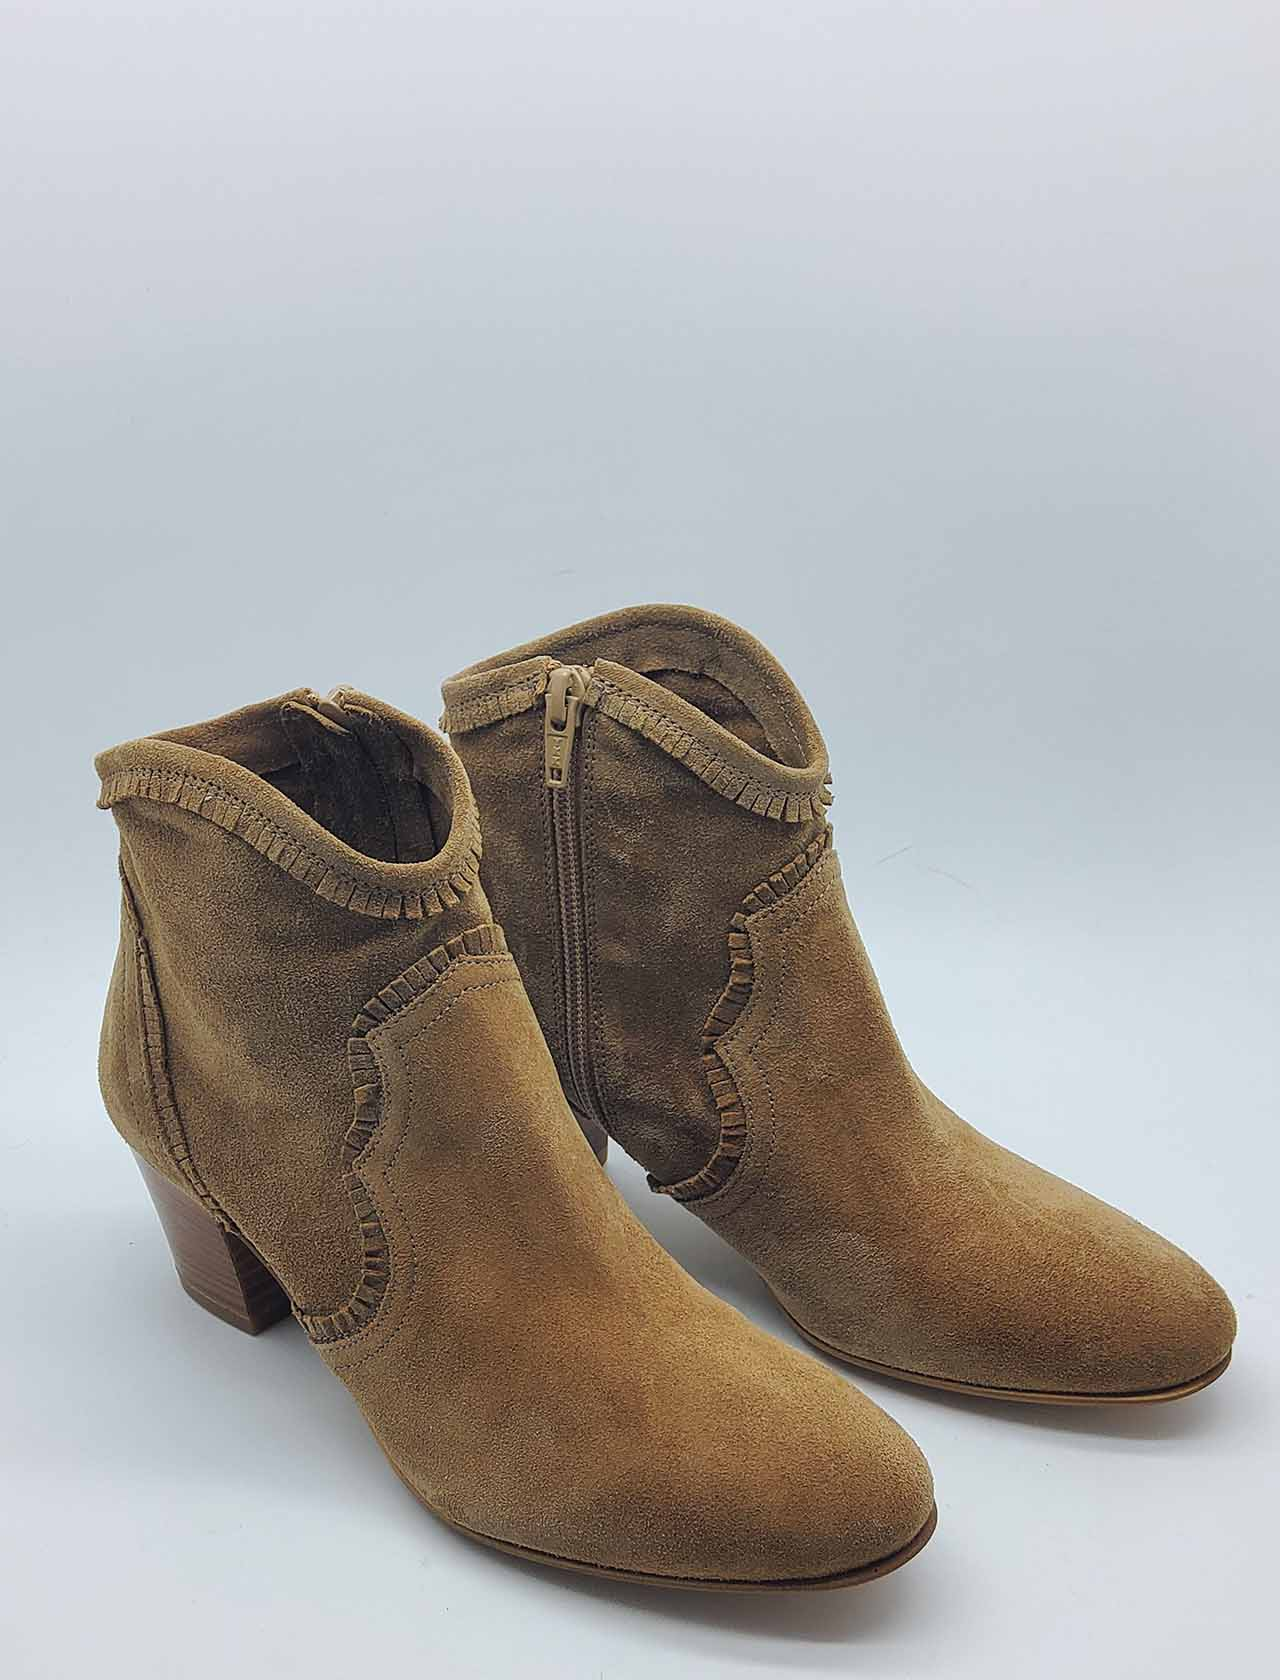 Women's Shoes Ankle Boots in Leather Suede Round Toe and Heel 50 Lamica | Ankle Boots | LESMA302